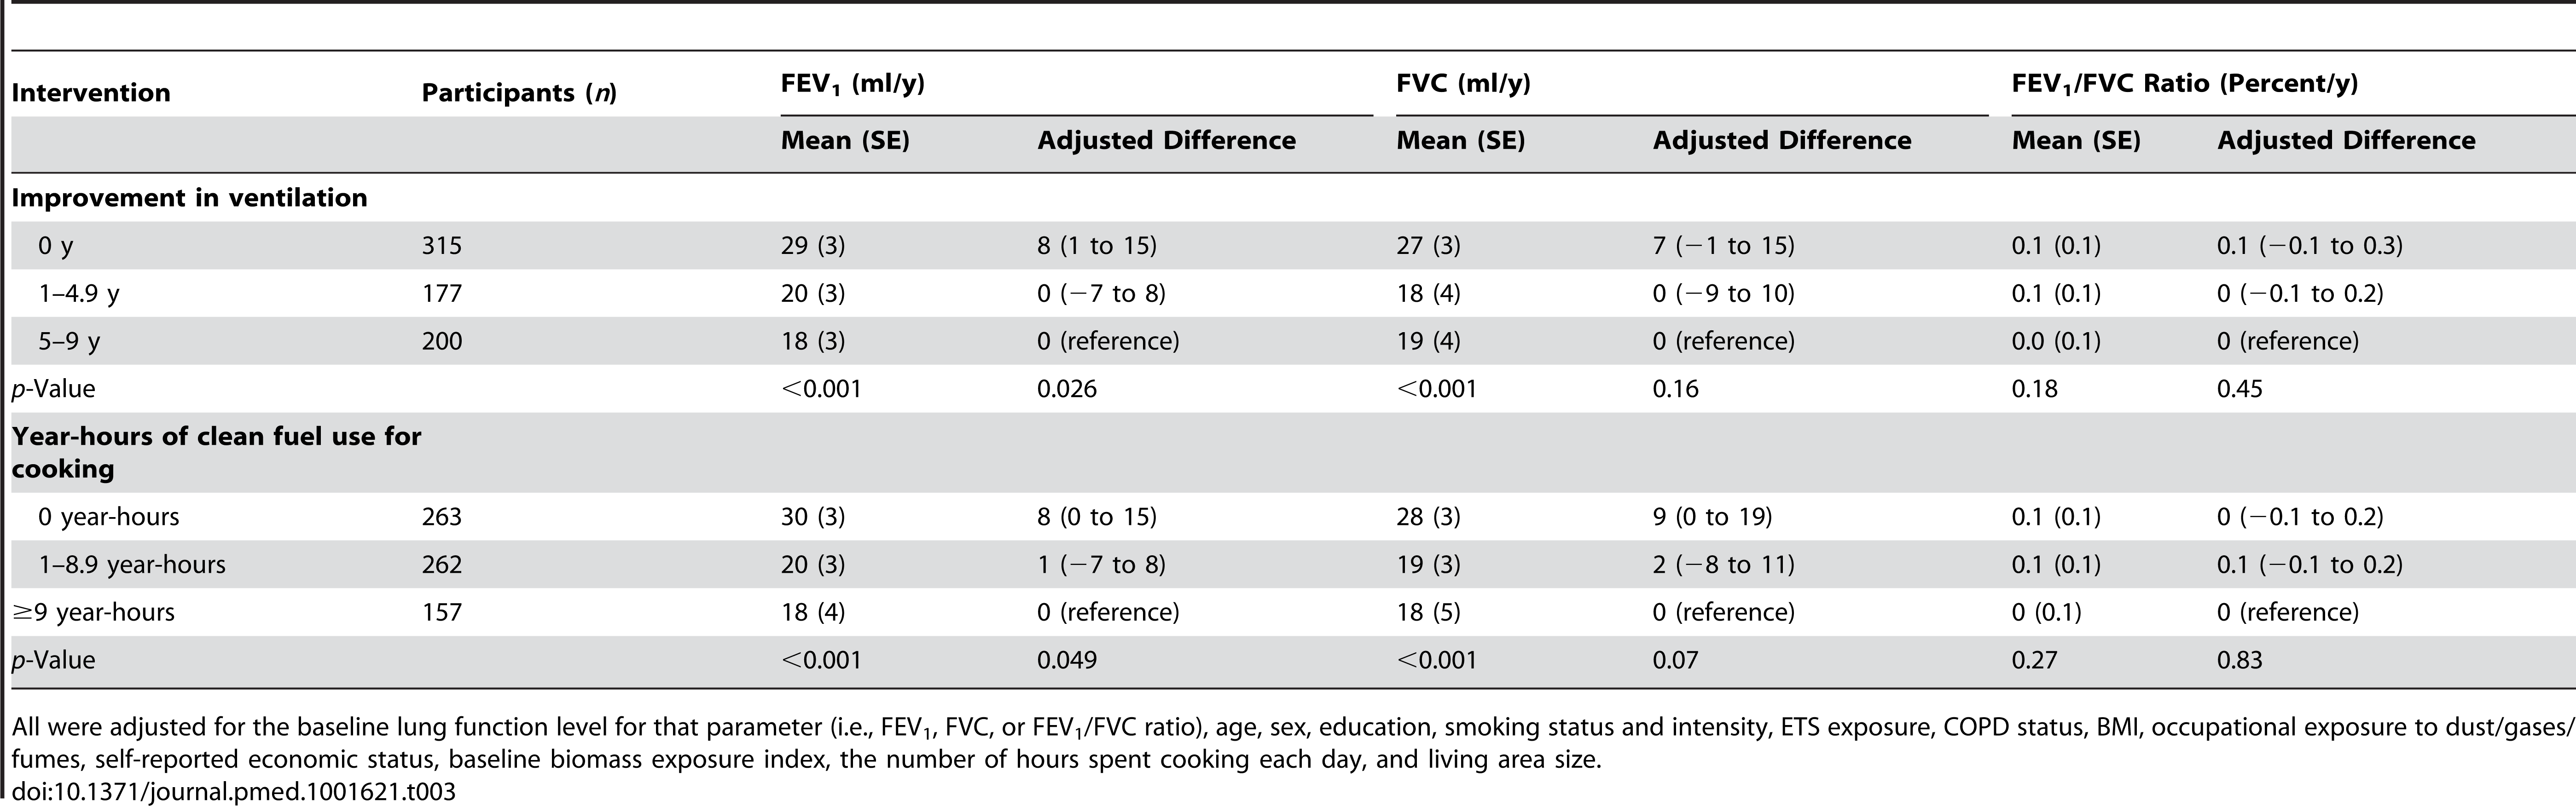 Differences between groups in annual declines in lung function over 9